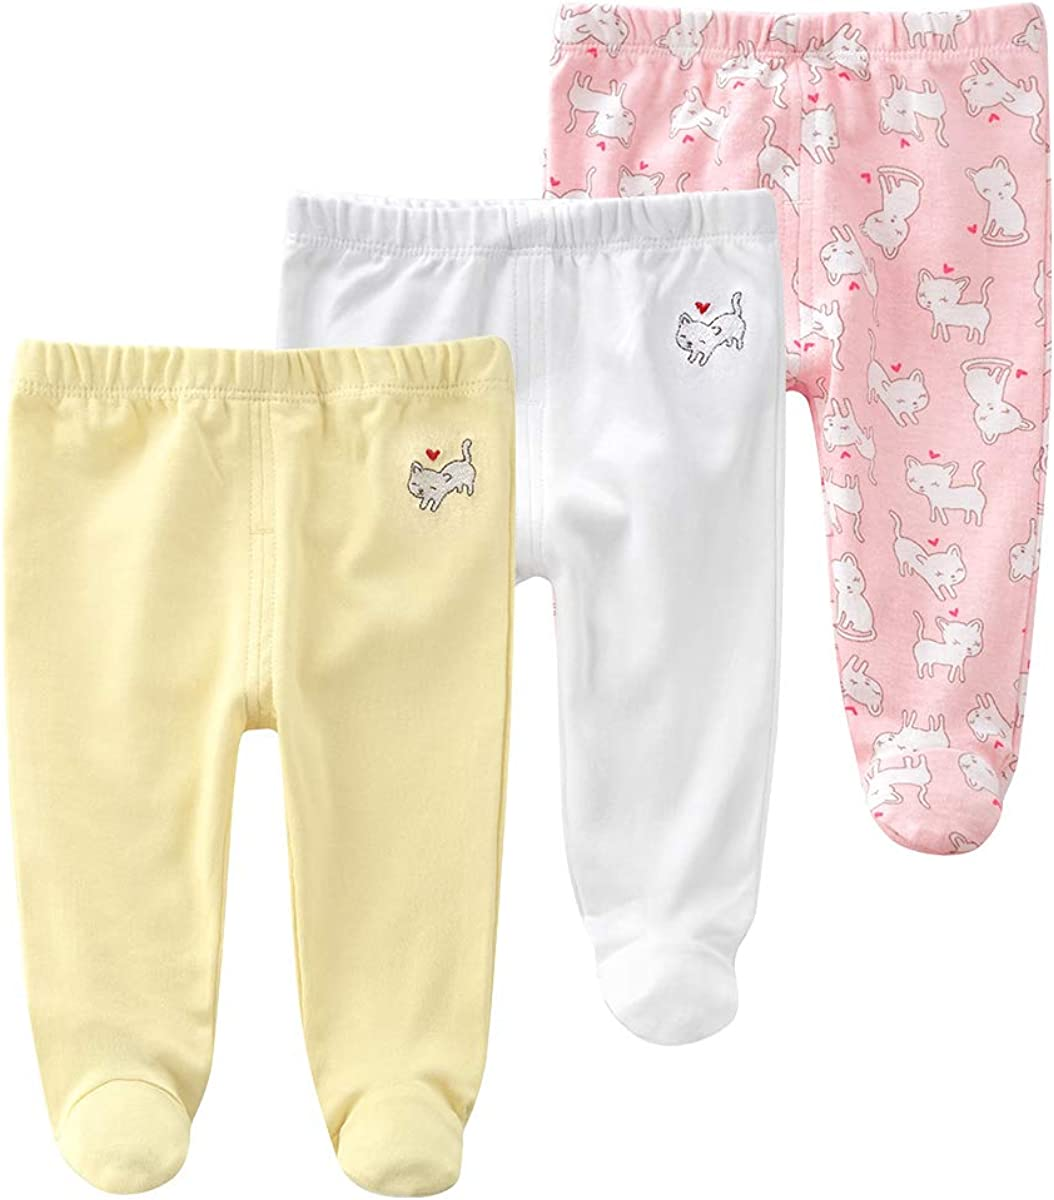 QGAKAGO Newborn to Toddler Baby 3 Pack Cotton Embroidery Pringting Casual Leggings Pull On Footed Pants 0-12 Months